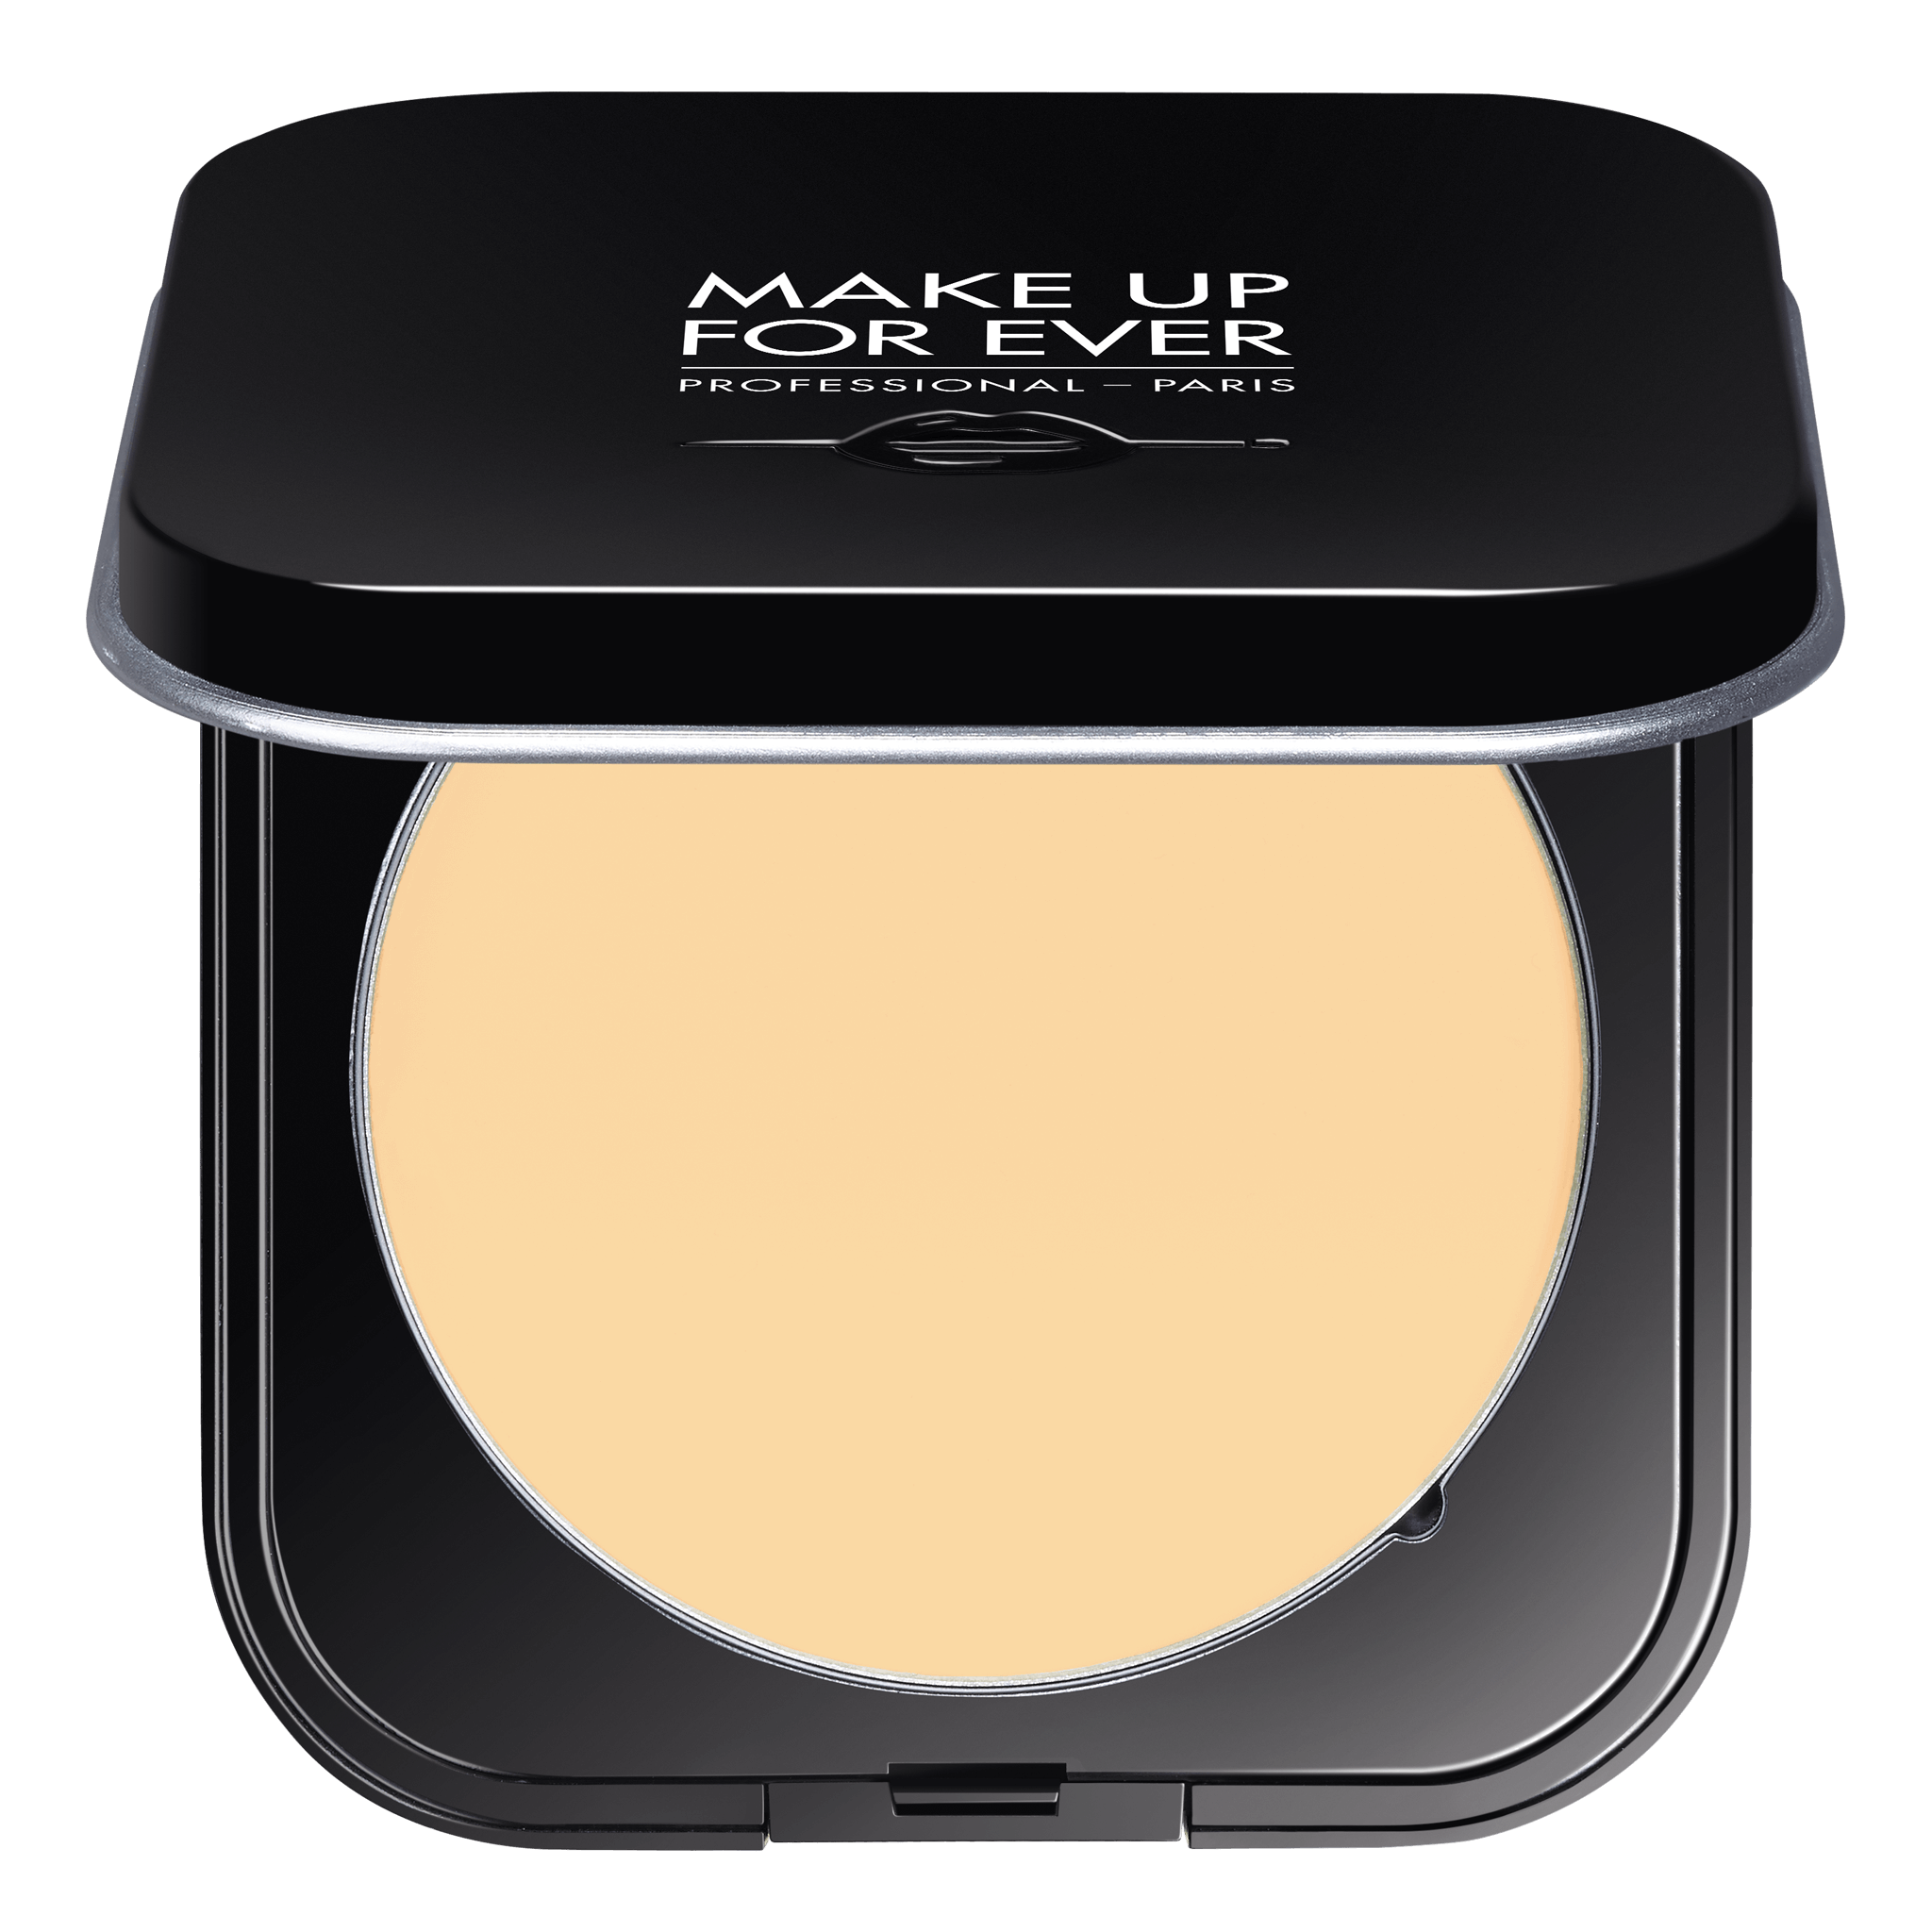 Ultra Hd Microfinishing Pressed Powder Is A Finishing Powder That Gives A Light Matte Effect And A Smooth Luminous Pressed Powder Banana Powder Setting Powder